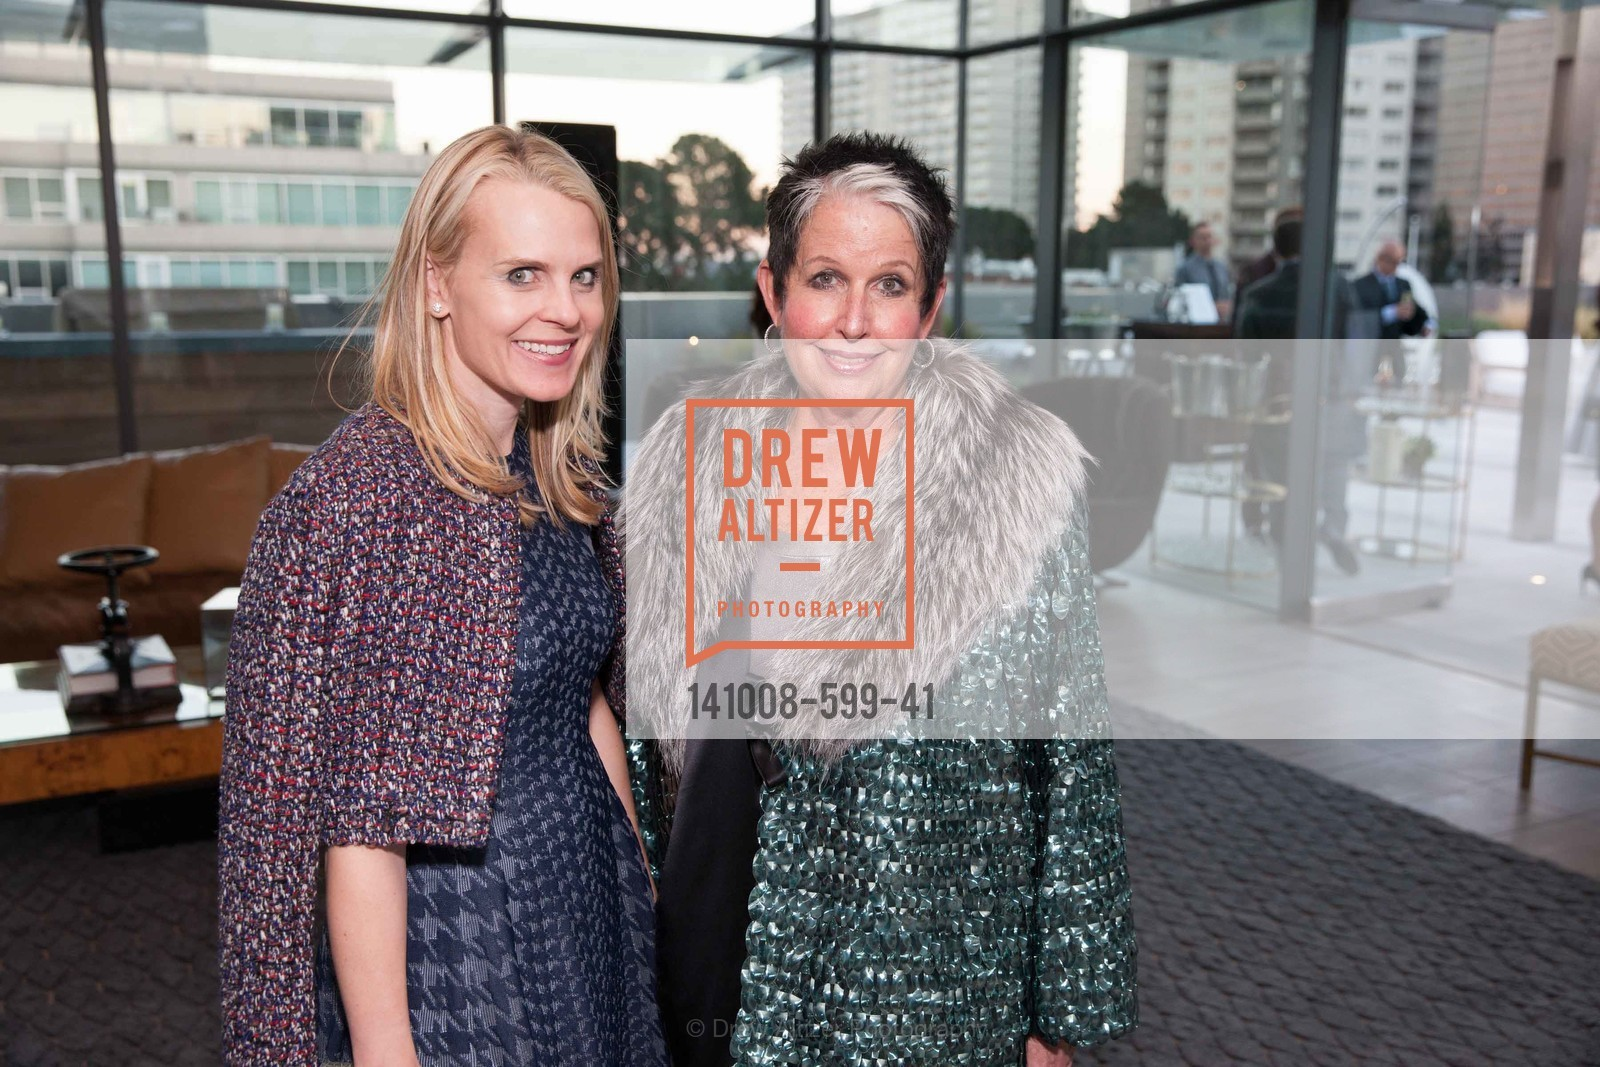 Jane Mudge, Karen Kubin, 7x7 HOT 20, US, October 8th, 2014,Drew Altizer, Drew Altizer Photography, full-service agency, private events, San Francisco photographer, photographer california